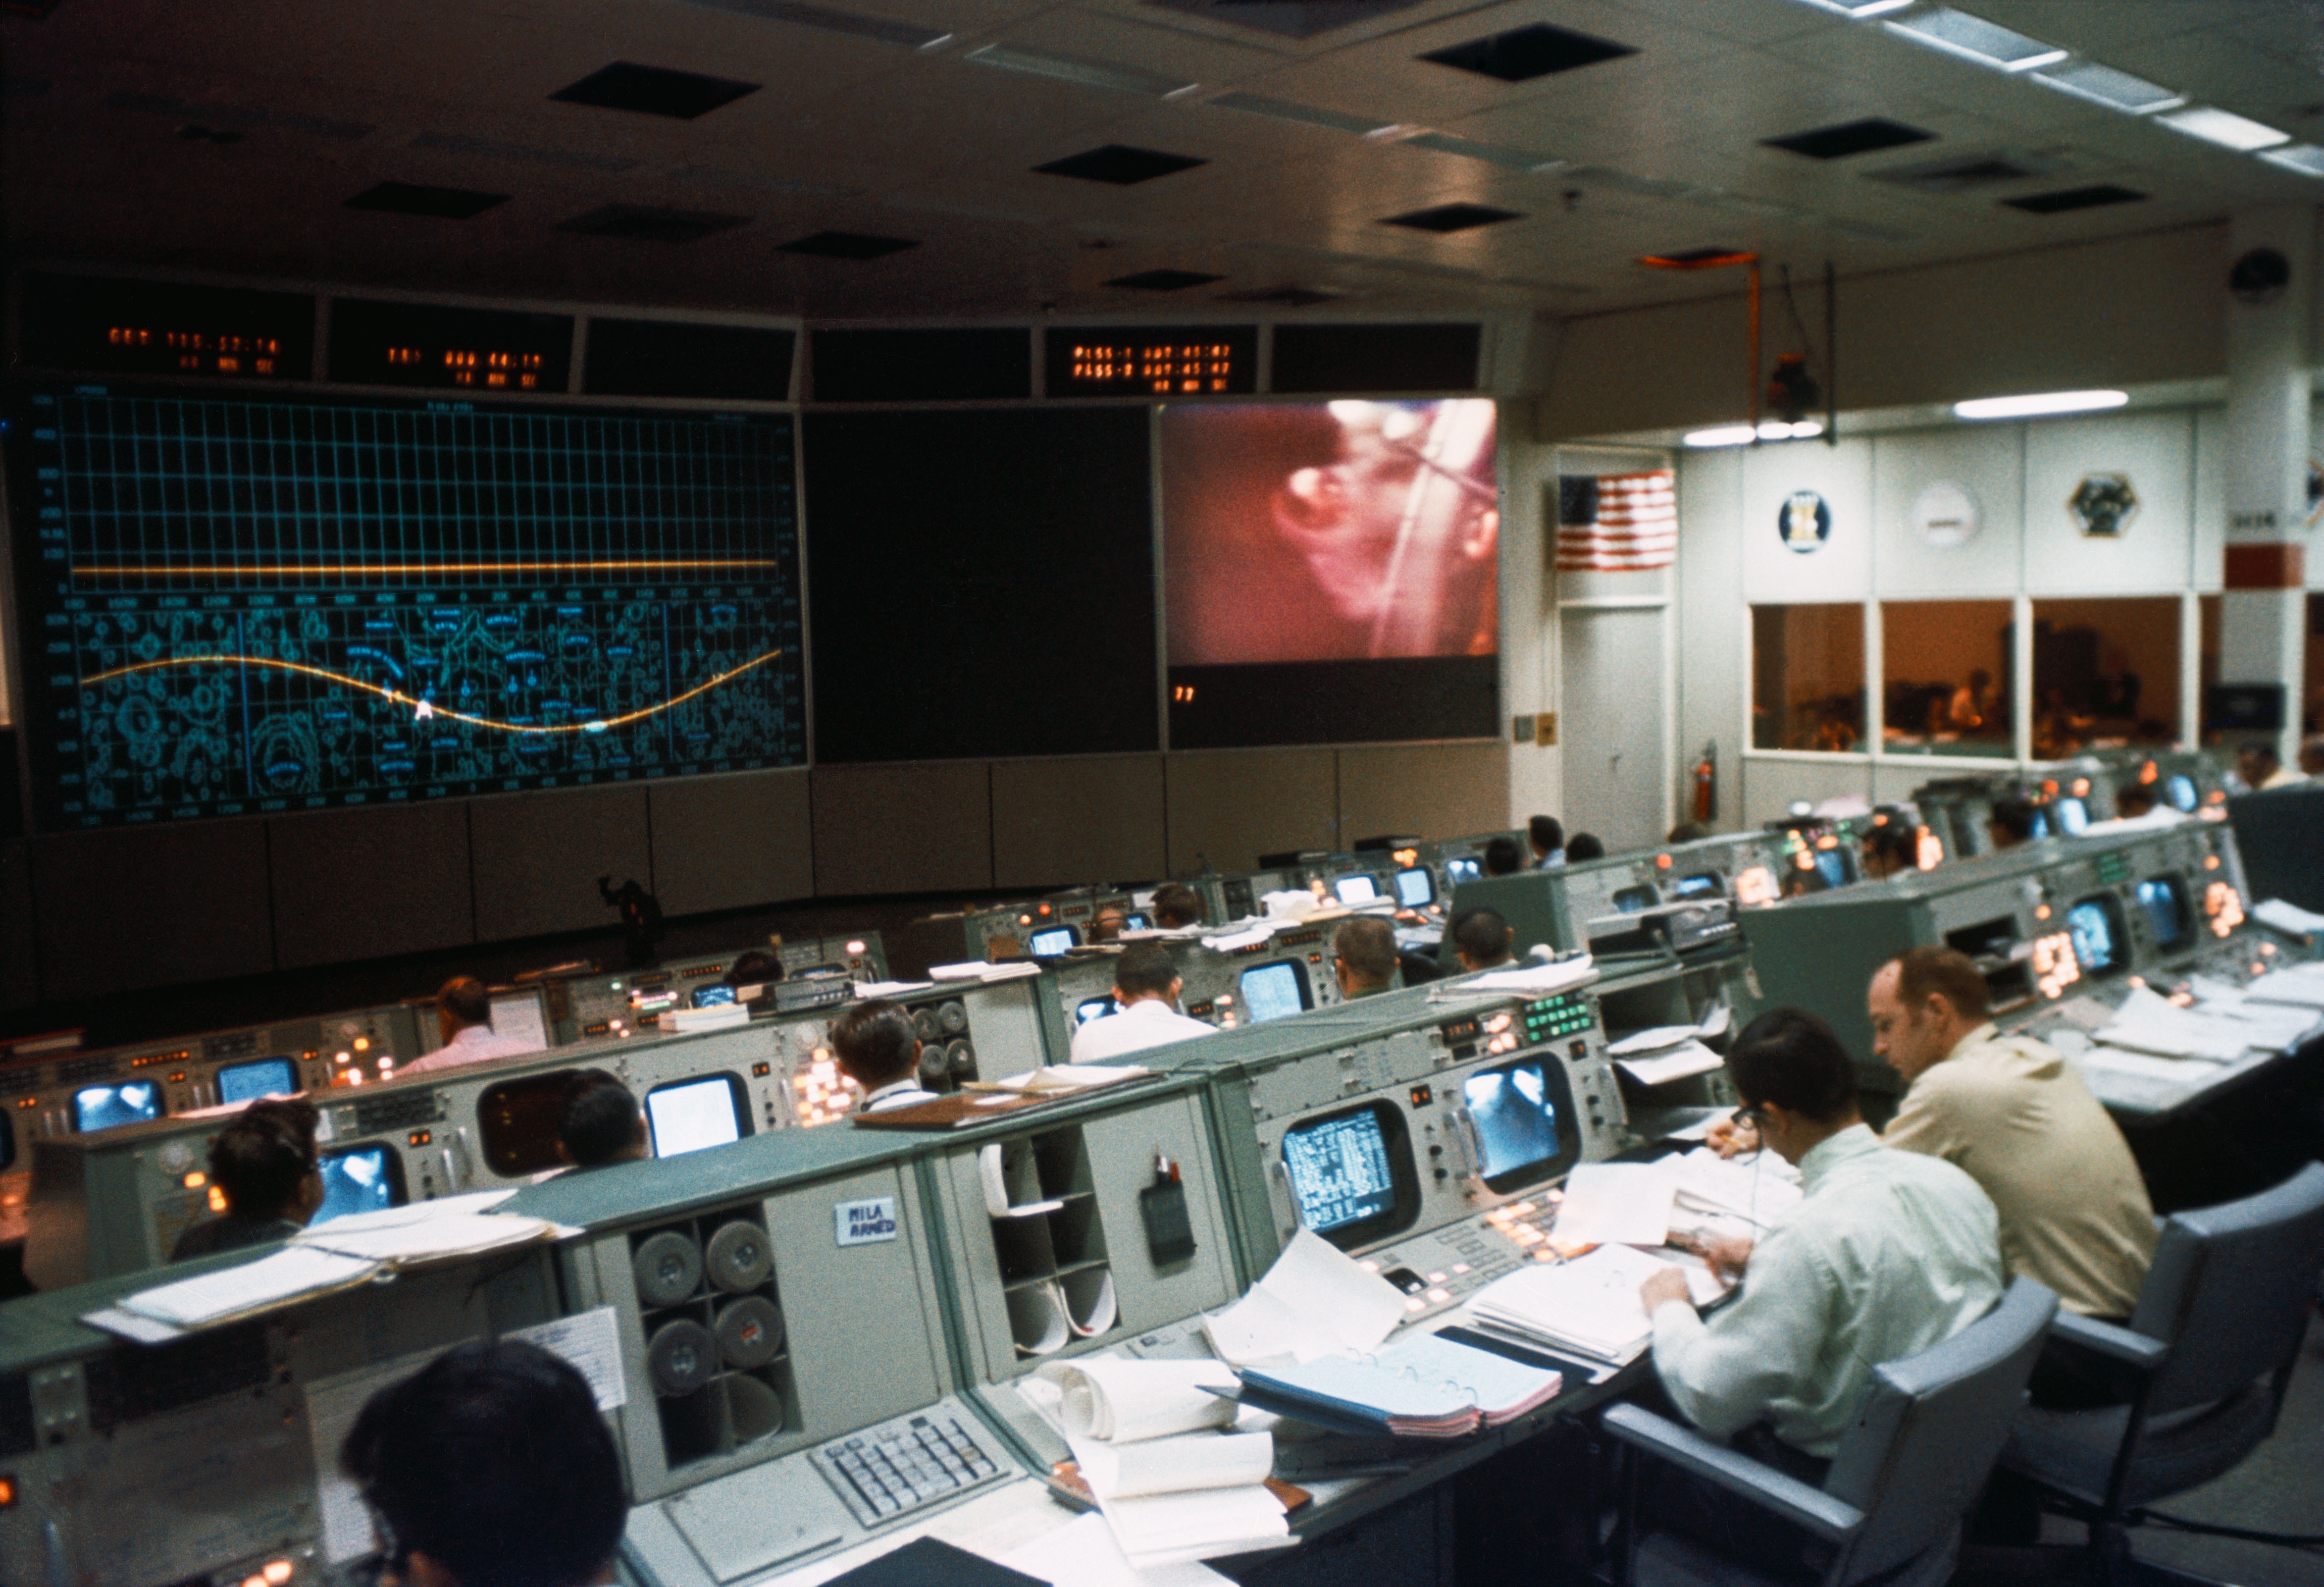 Nasa Control Room 1960s - Pics about space